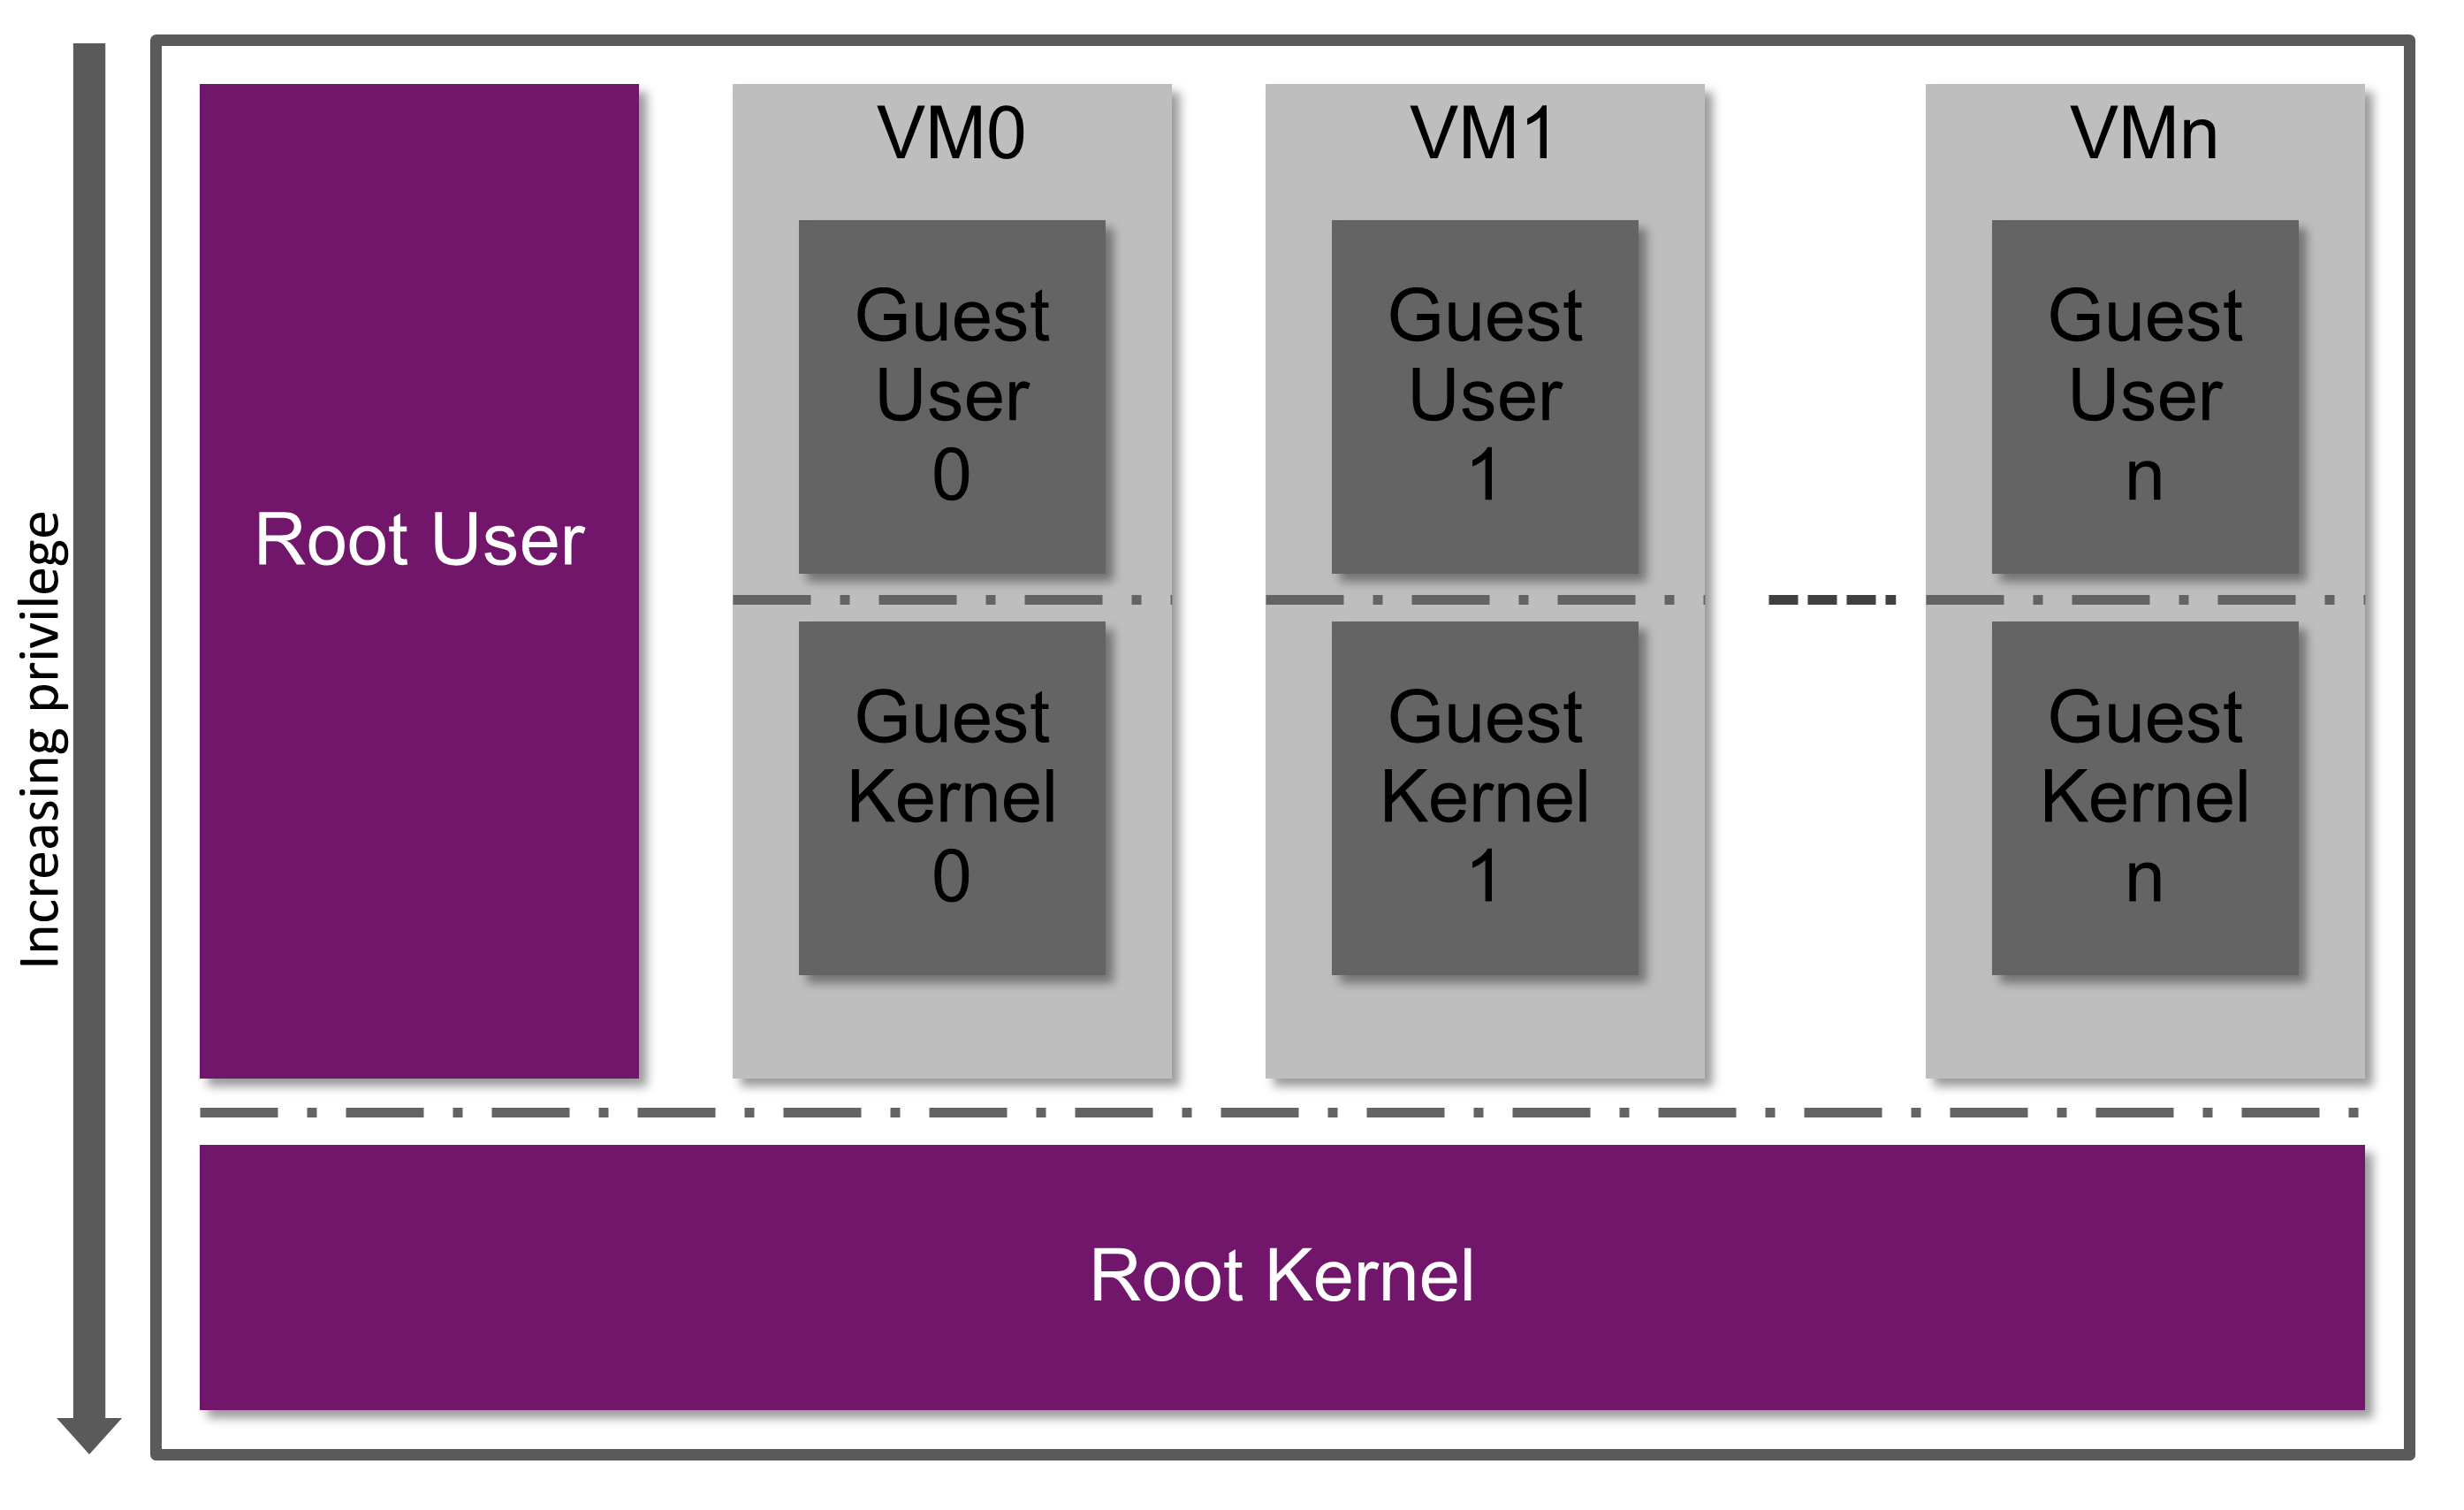 MIPS VZ - root user and kernel and guest user and kernel